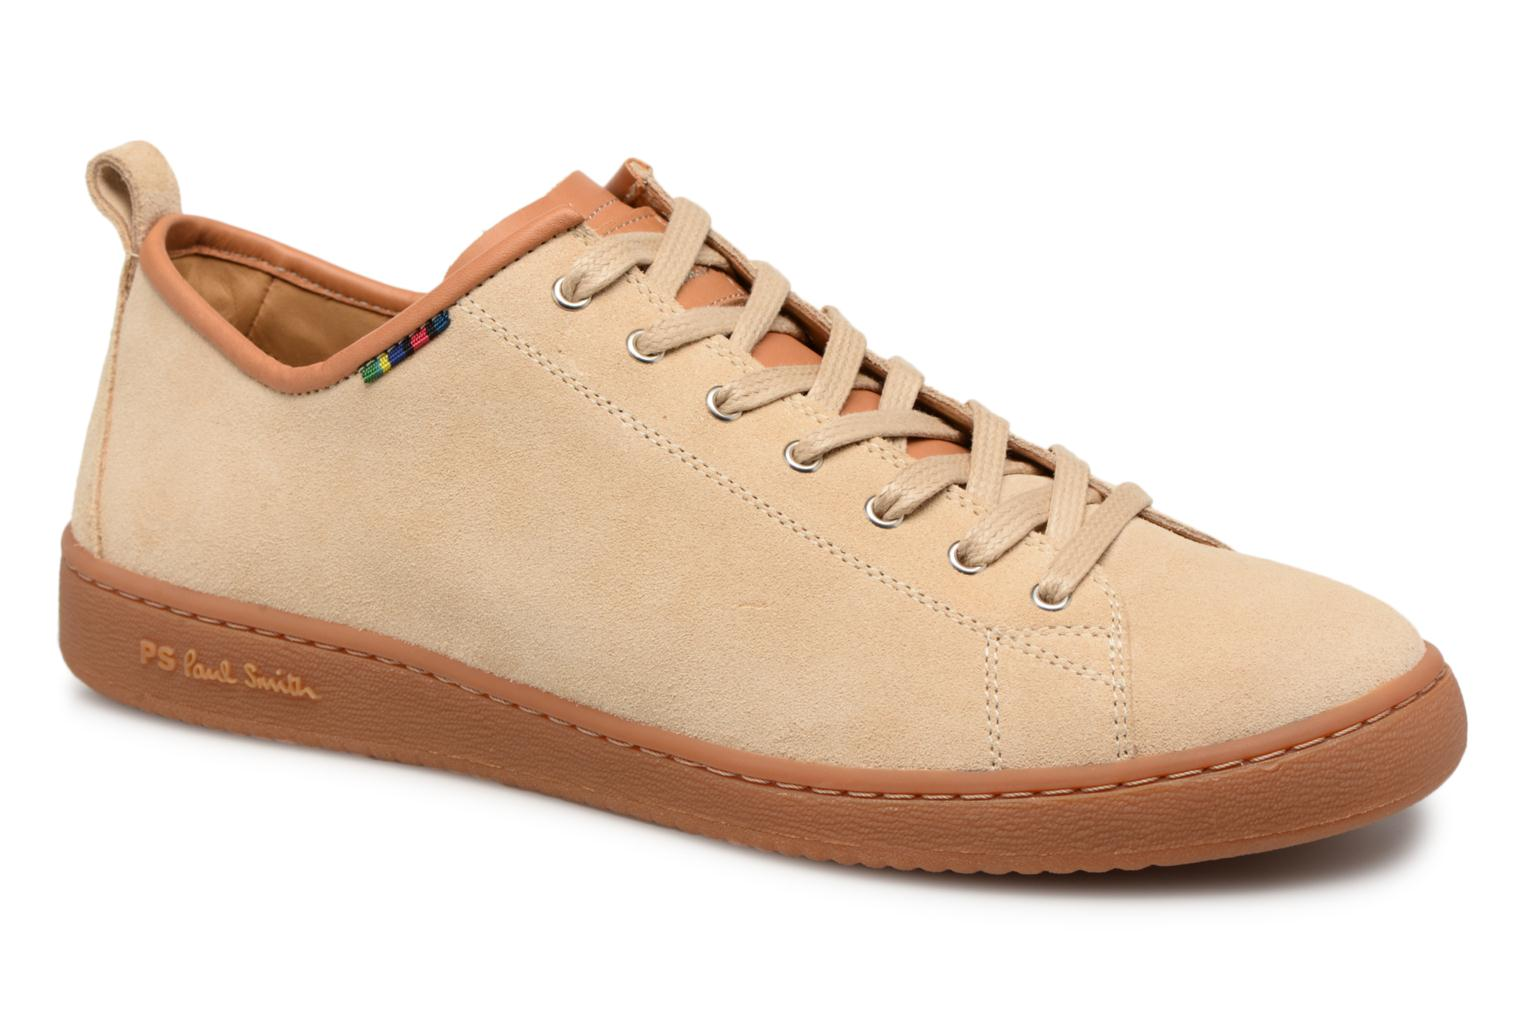 Sneakers Paul Smith Beige